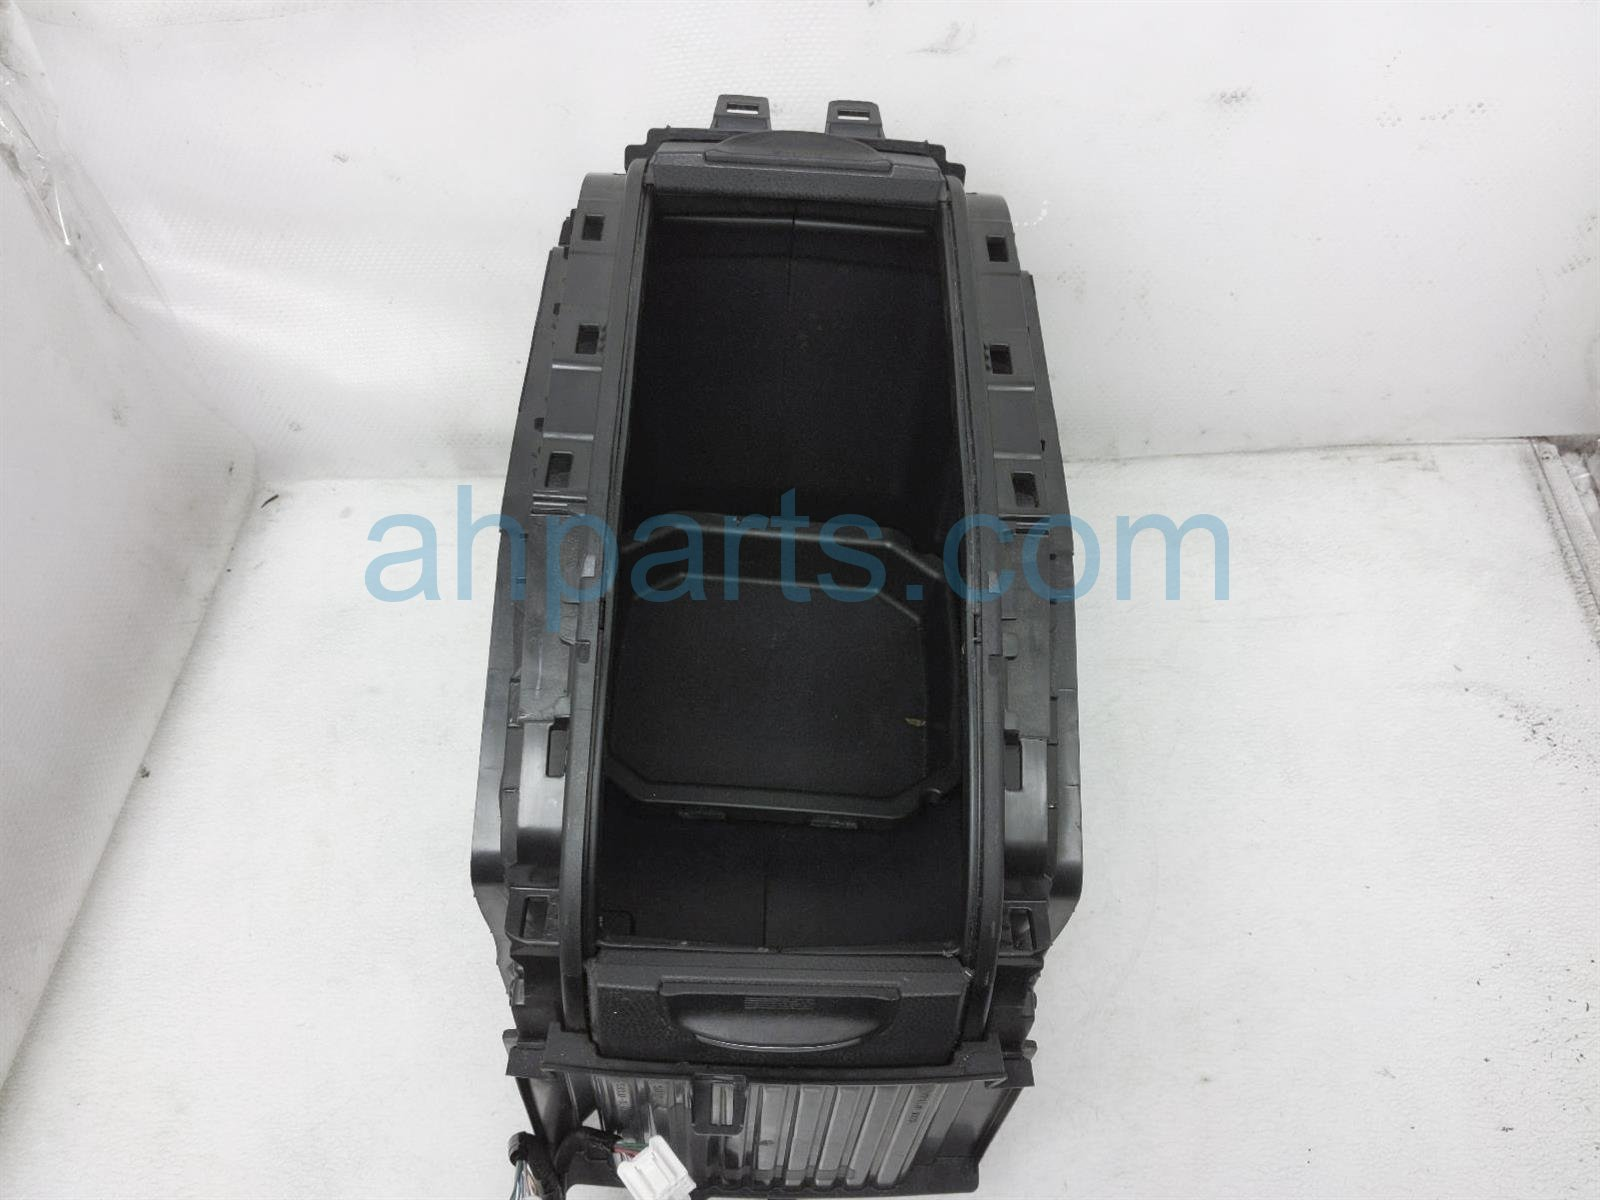 2014 Toyota Highlander Center Console Arm Rest Assy   Black 58810 0E200 C1 Replacement